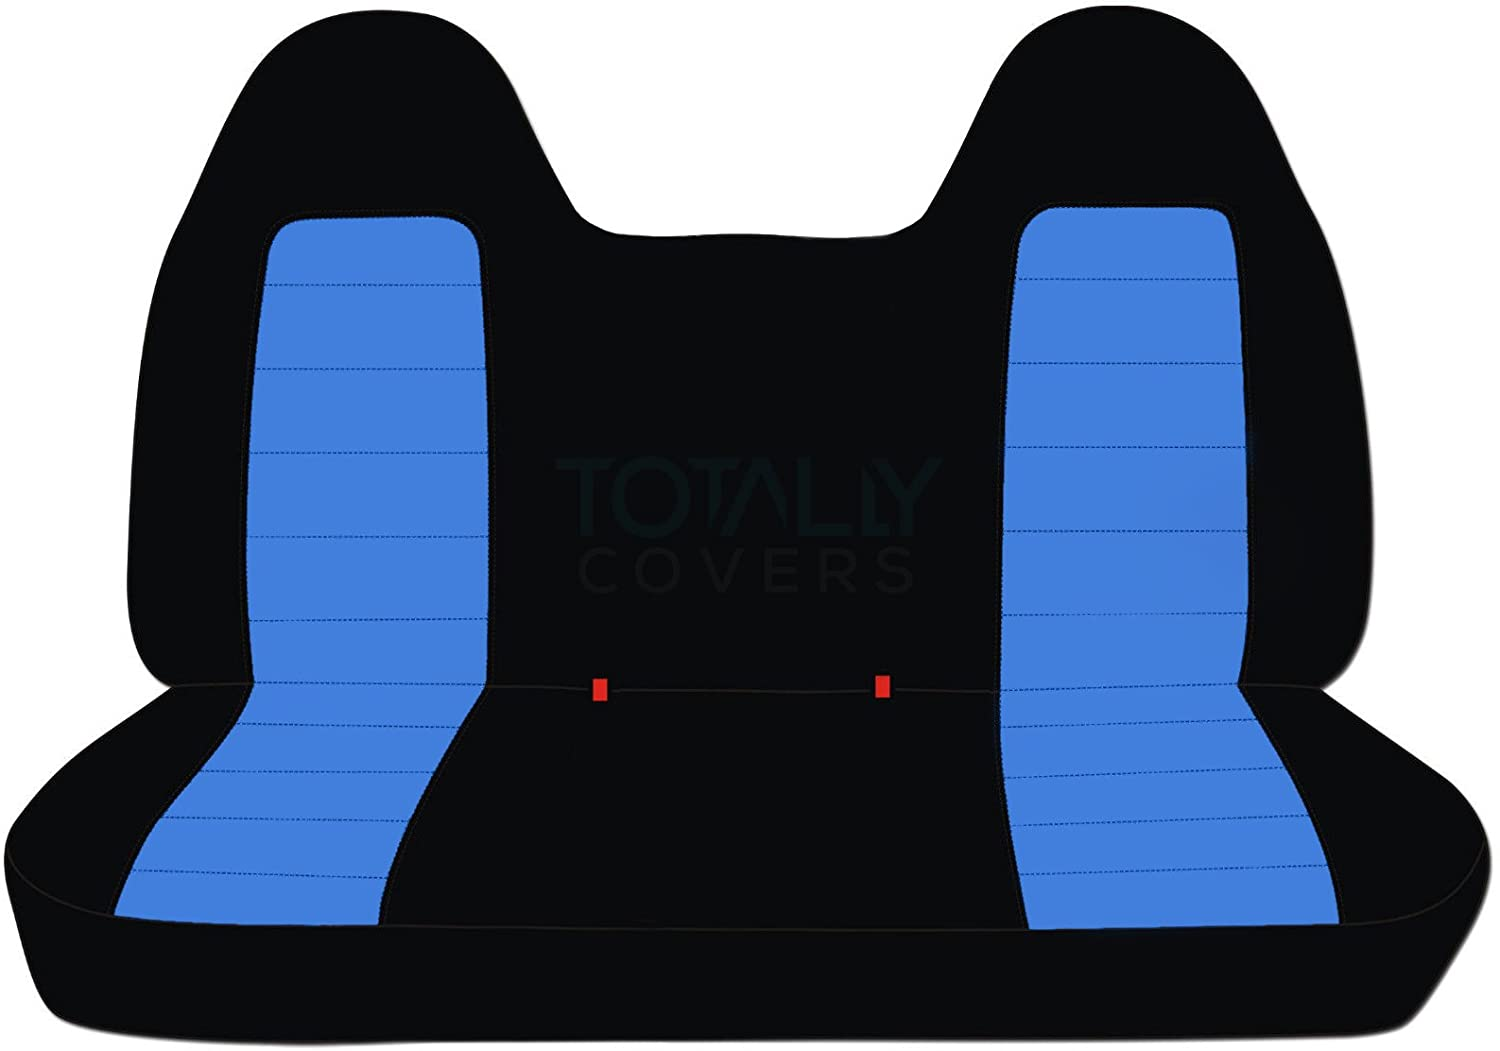 1992-1998 Ford F-150 F-250 F-350 Two-Tone Truck Seat Covers (Front/Rear Solid Bench) w/wo Separate Headrests/Armrest: Black & Burgundy (21 Colors) 1993 1994 1995 1996 1997 F-Series F150 F250 F350 Designcovers